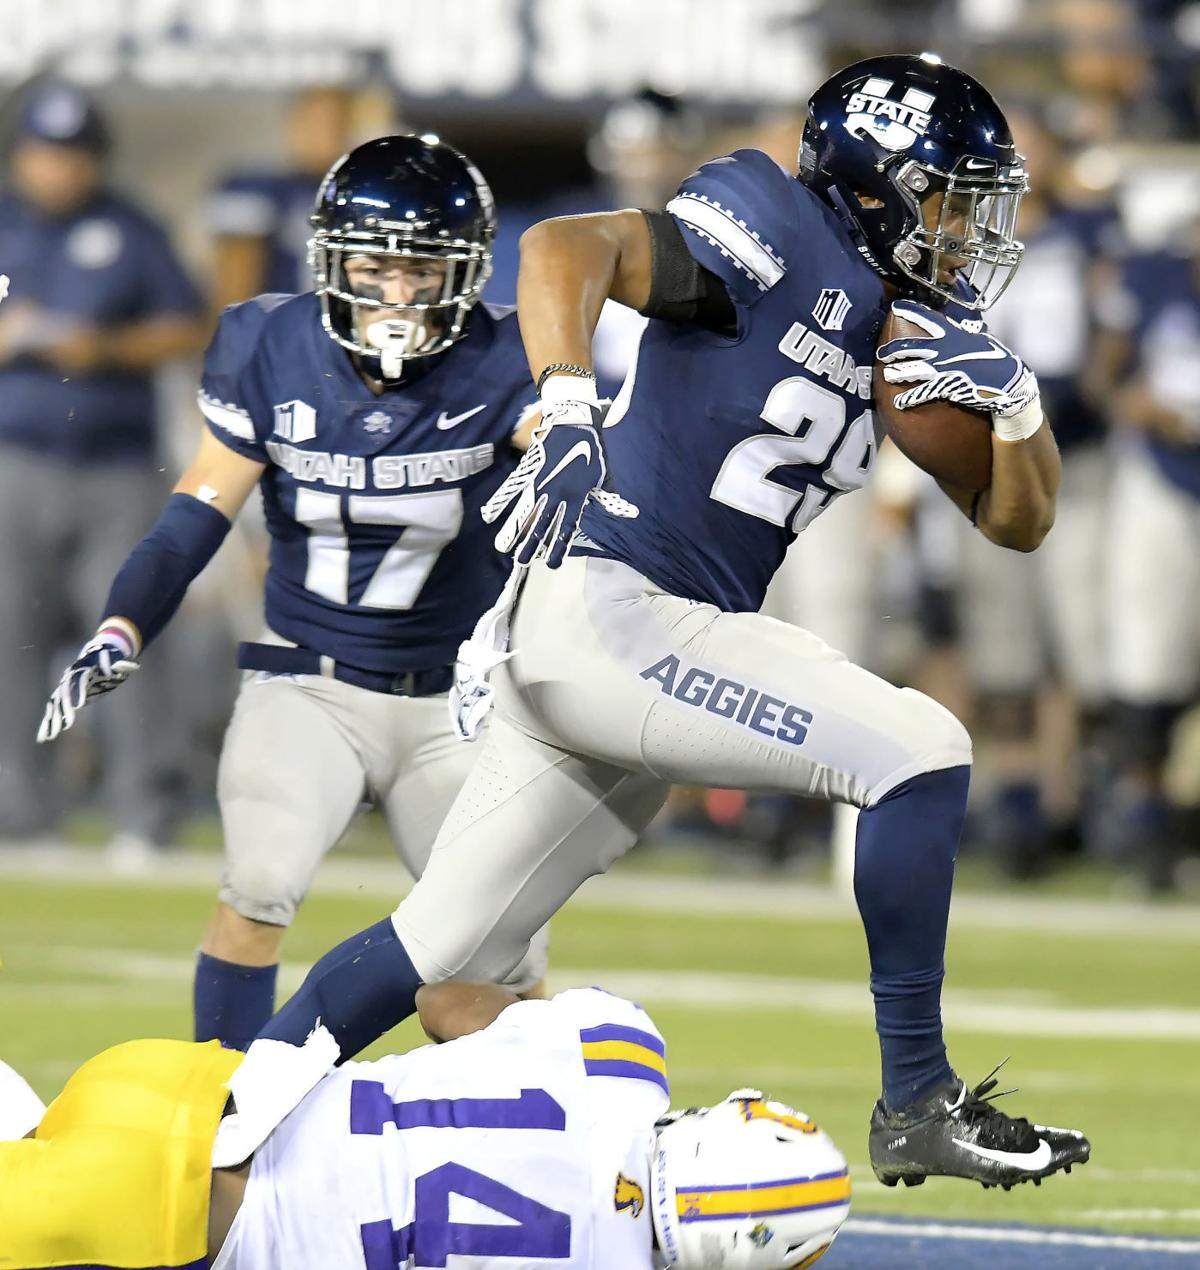 Tennessee Tech Utah St SECONDARY OFFENSE